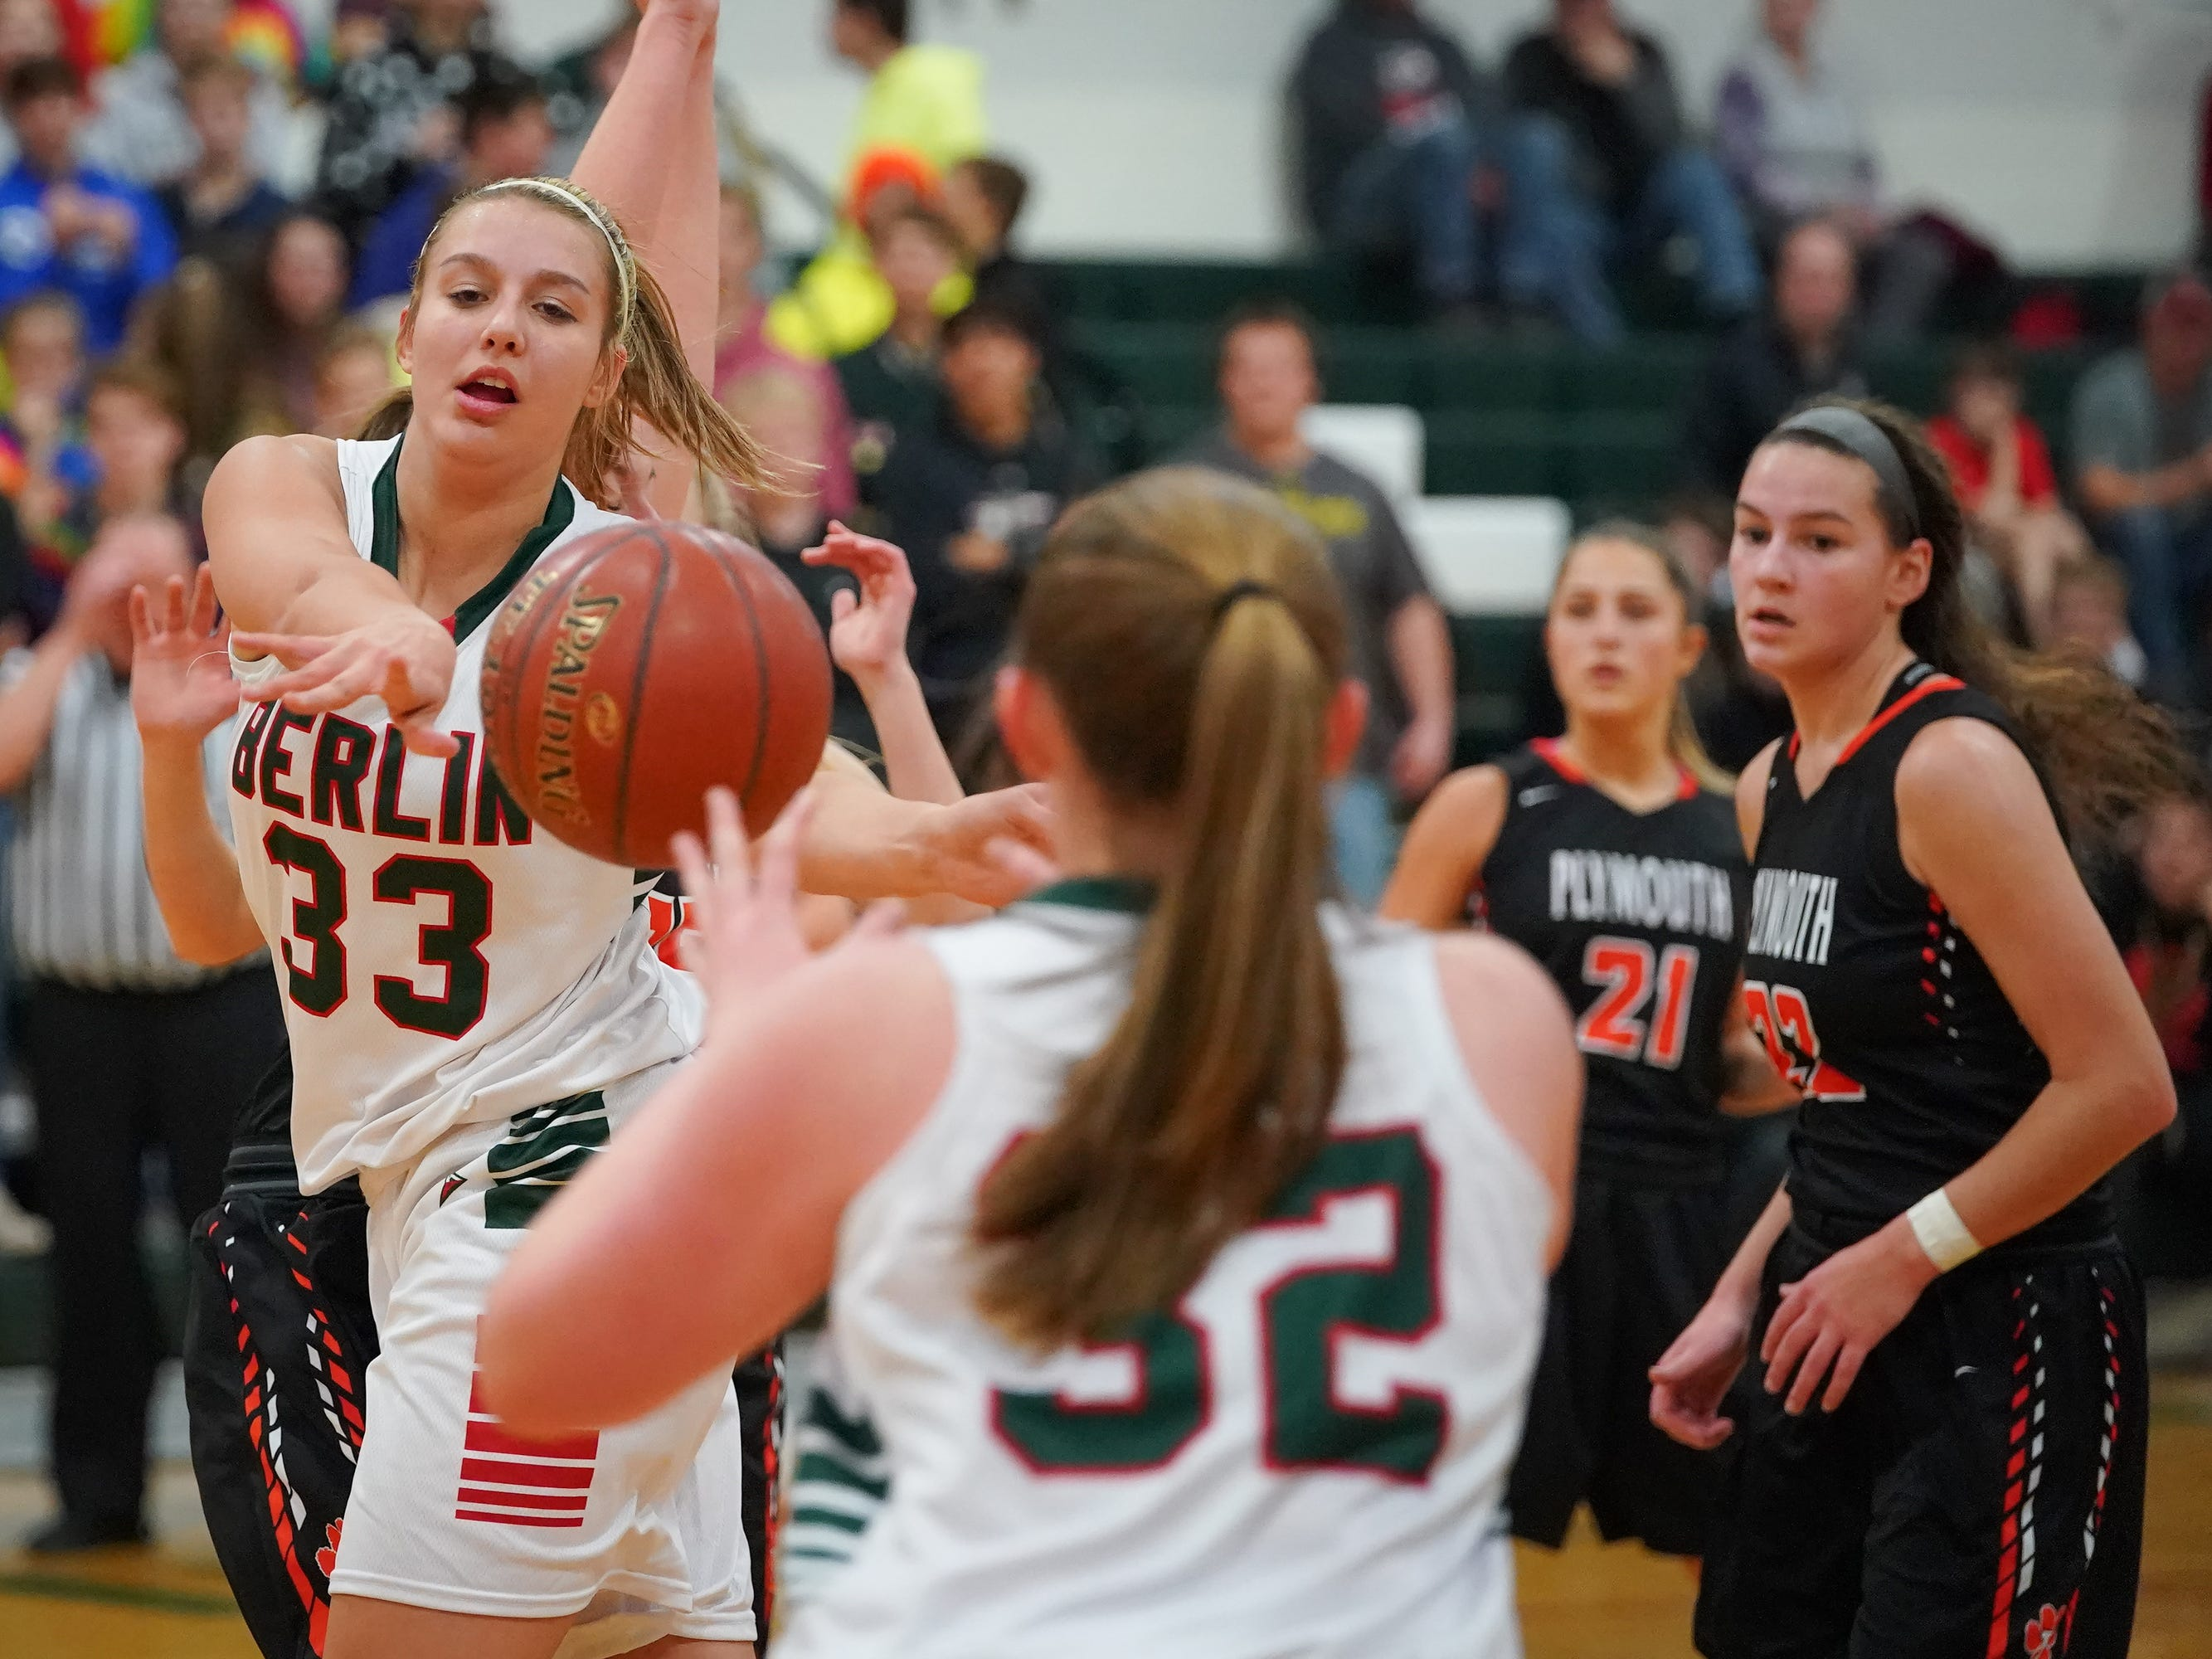 Madalyn Naparalla (33) of Berlin passes to Jenna Sternitske (32). The Berlin Indians hosted the Plymouth Panthers in an East Central Conference basketball game Thursday evening, December 13, 2018.